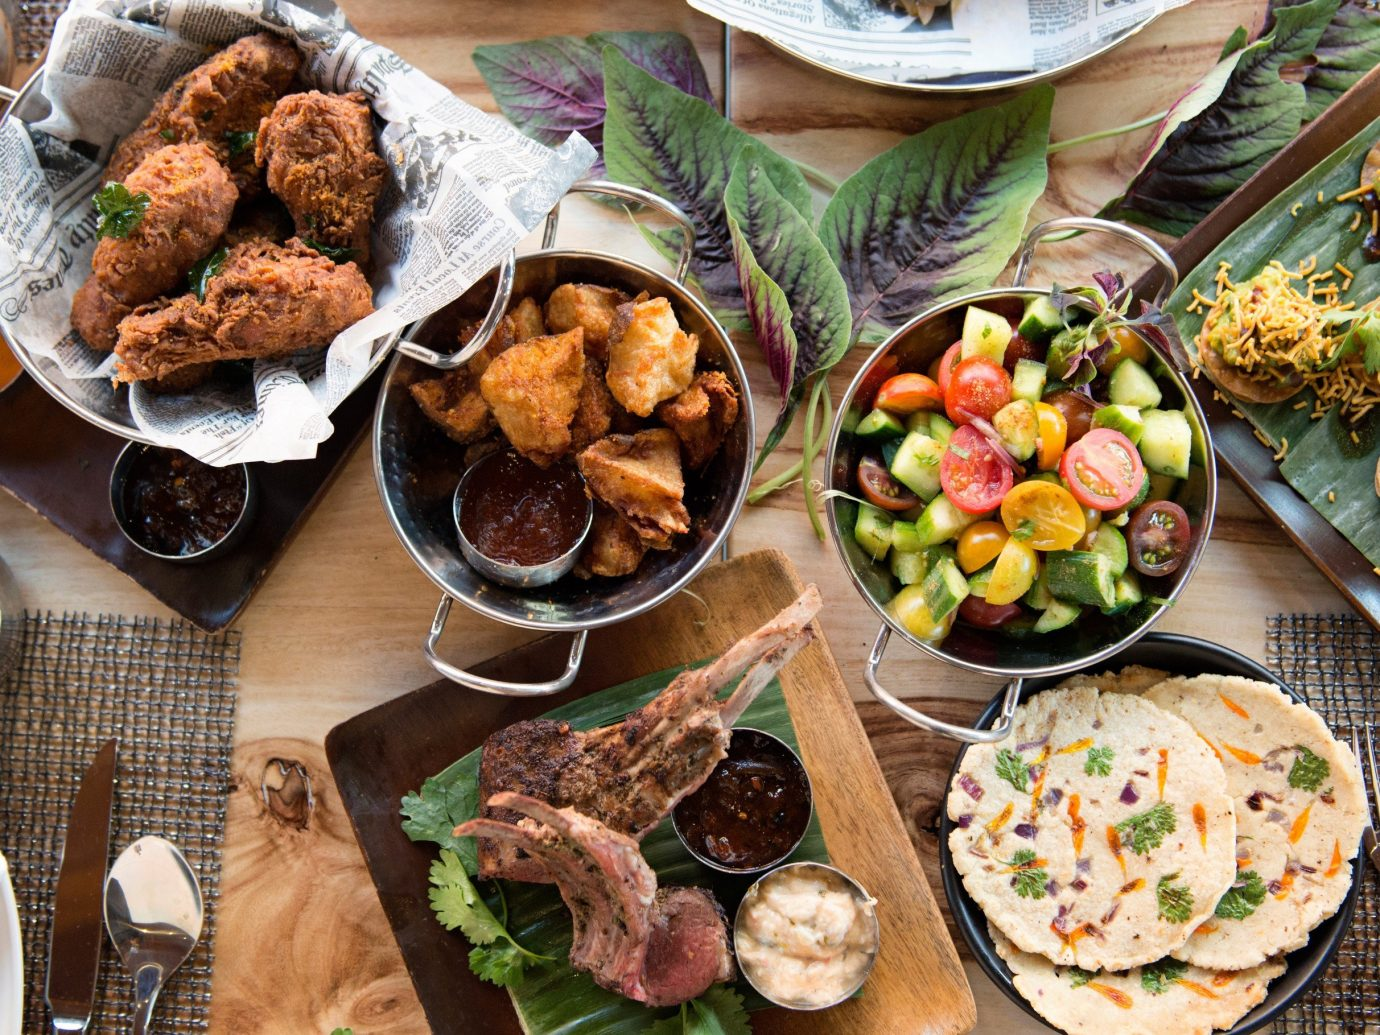 Trip Ideas food table plate dish meal brunch different cuisine lunch set several